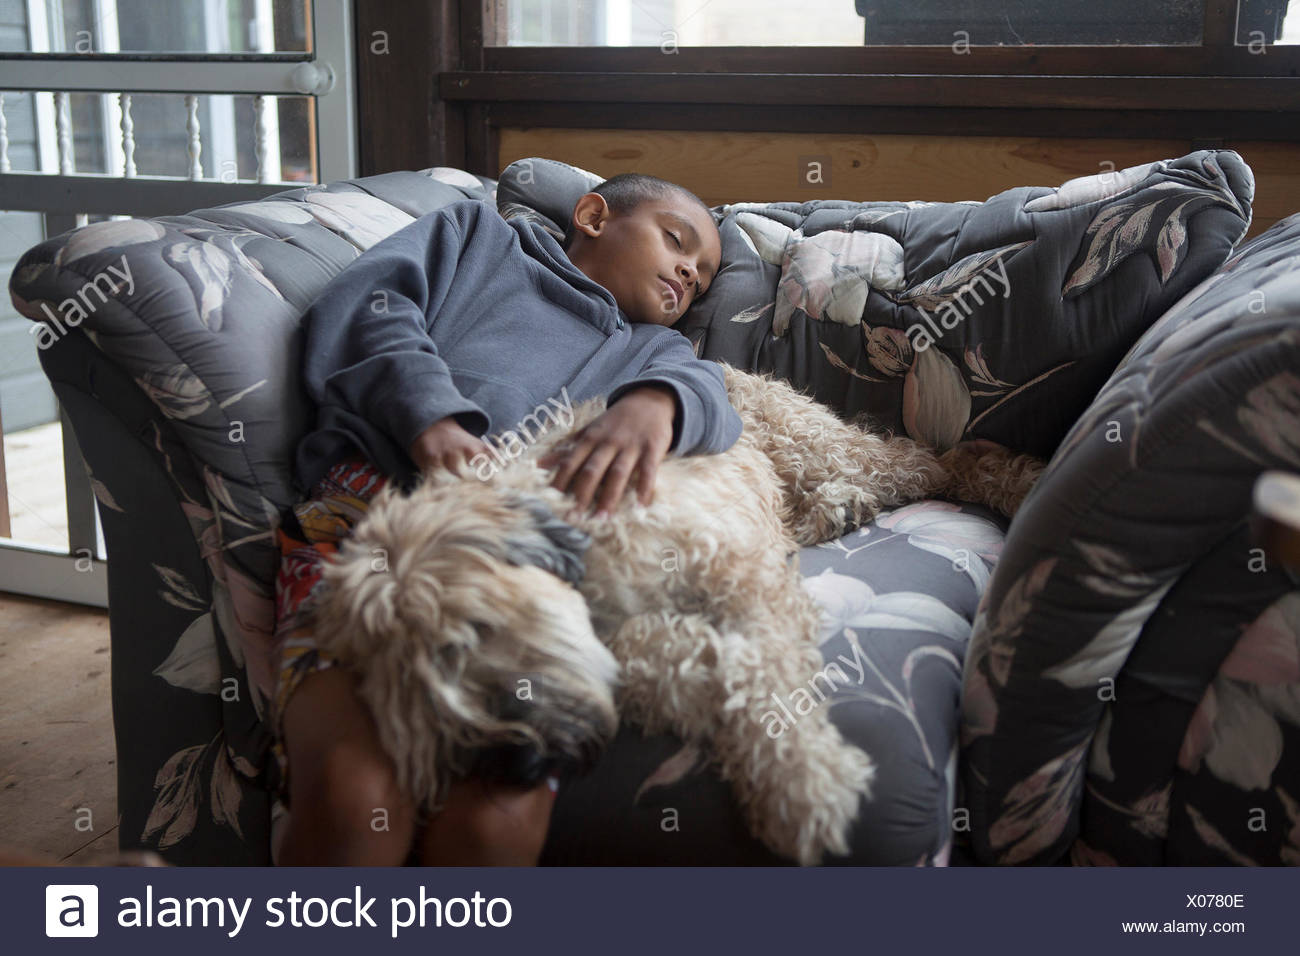 Sleeping Boy - Stock Image